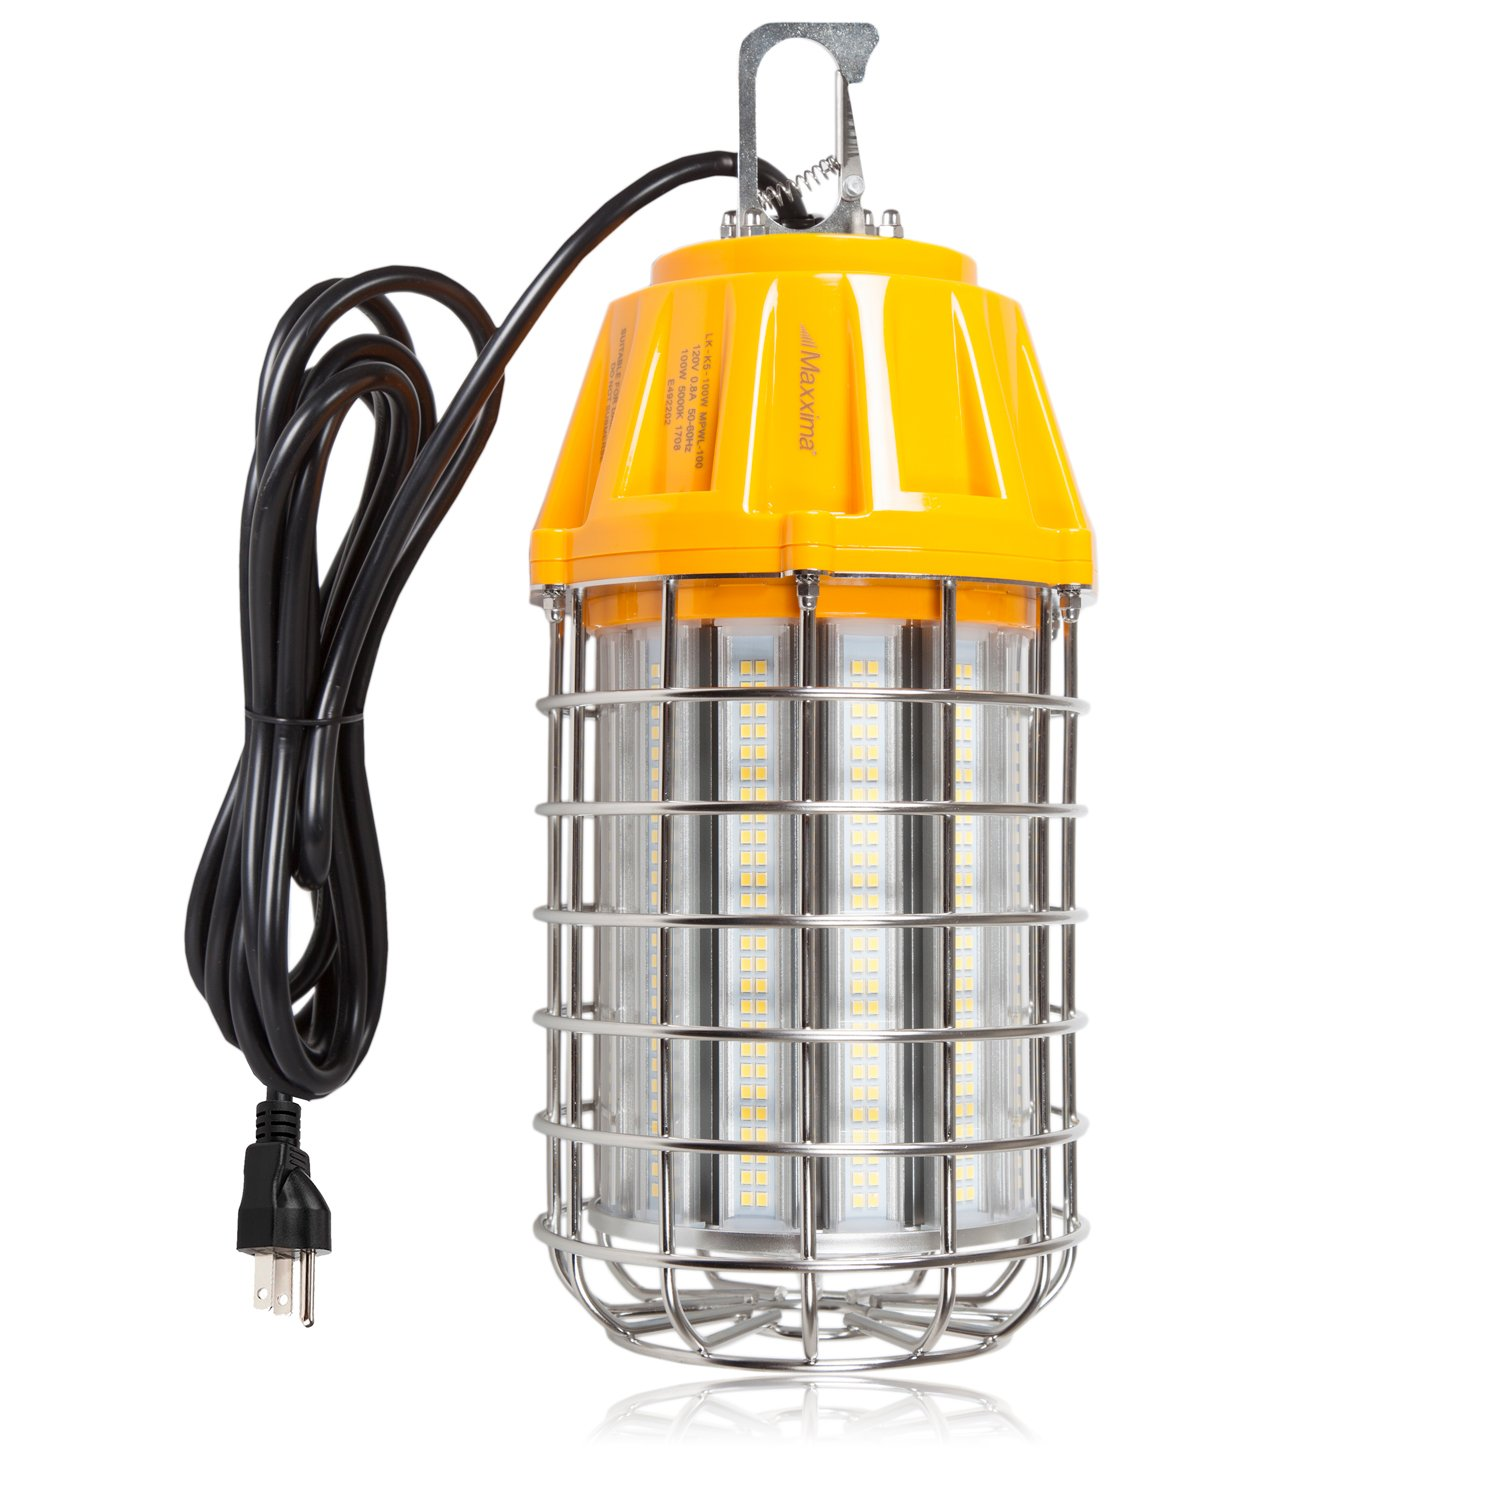 Maxxima High Bay LED Temporary Work Light Fixture, 100 Watt 1200 Lumens Daylight 5000K, Stainless Steel Cage Guard, Plug In